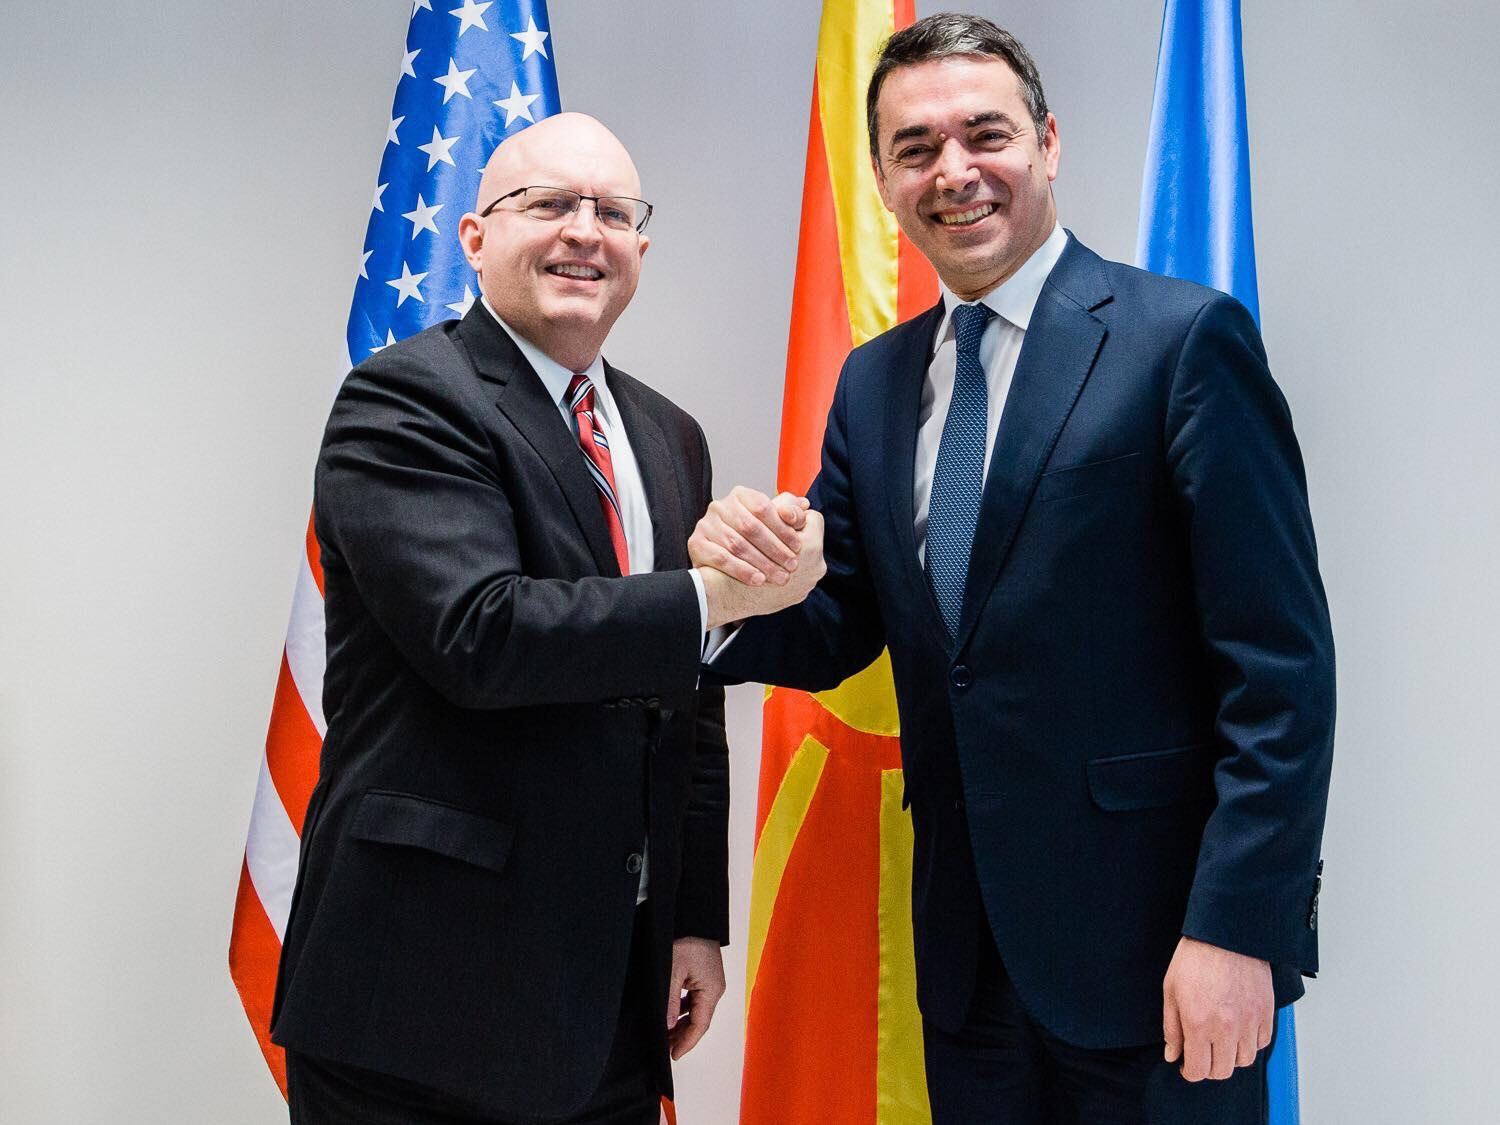 US Senior official praises the Prespa agreement